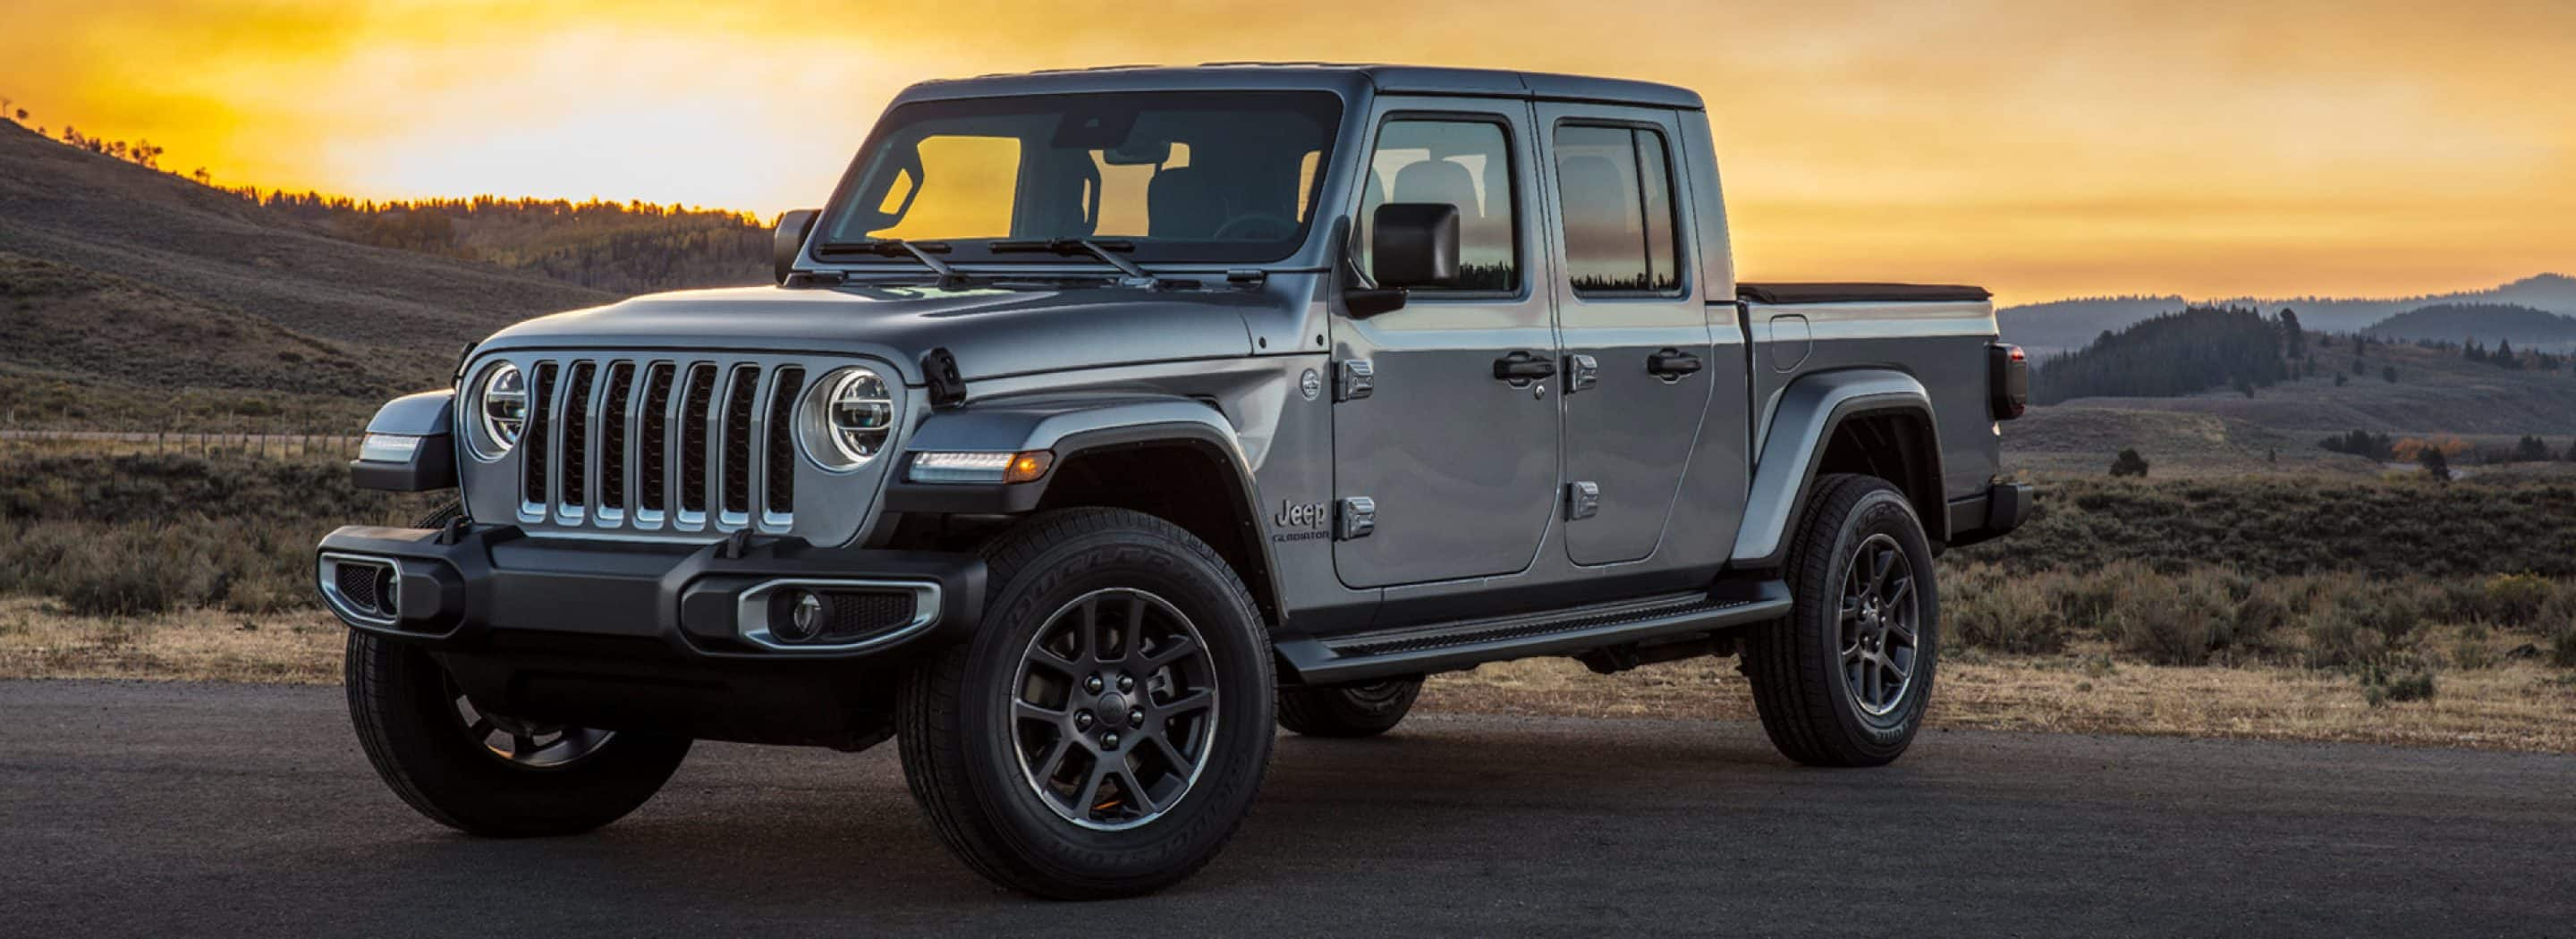 Baltimore Tow Show 2020.2020 Jeep Gladiator Revealed Thompson Automotive Group